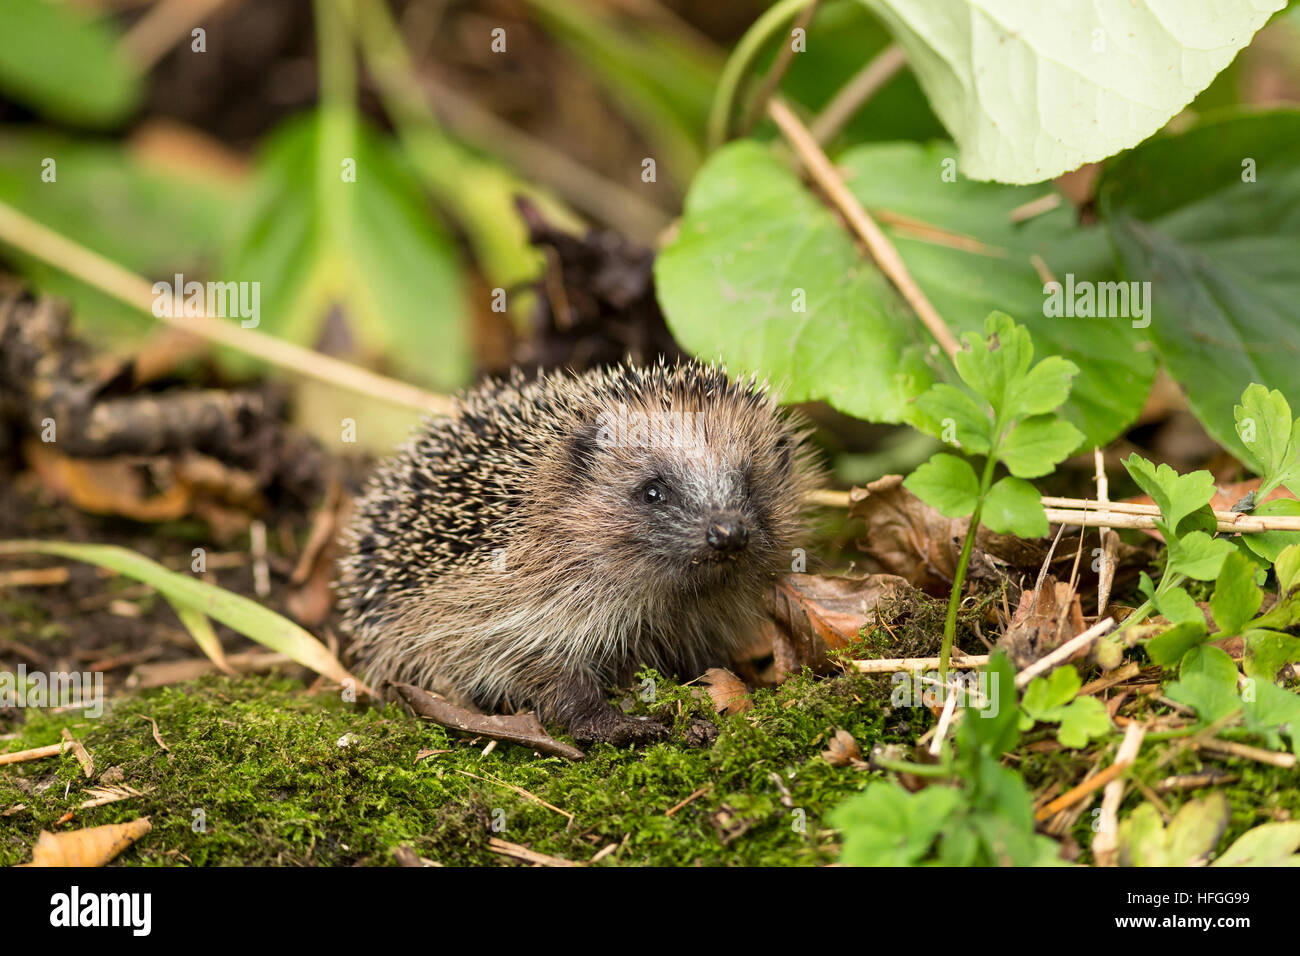 juvenile hedgehog in autumn garden amongst moss and leaves - Stock Image